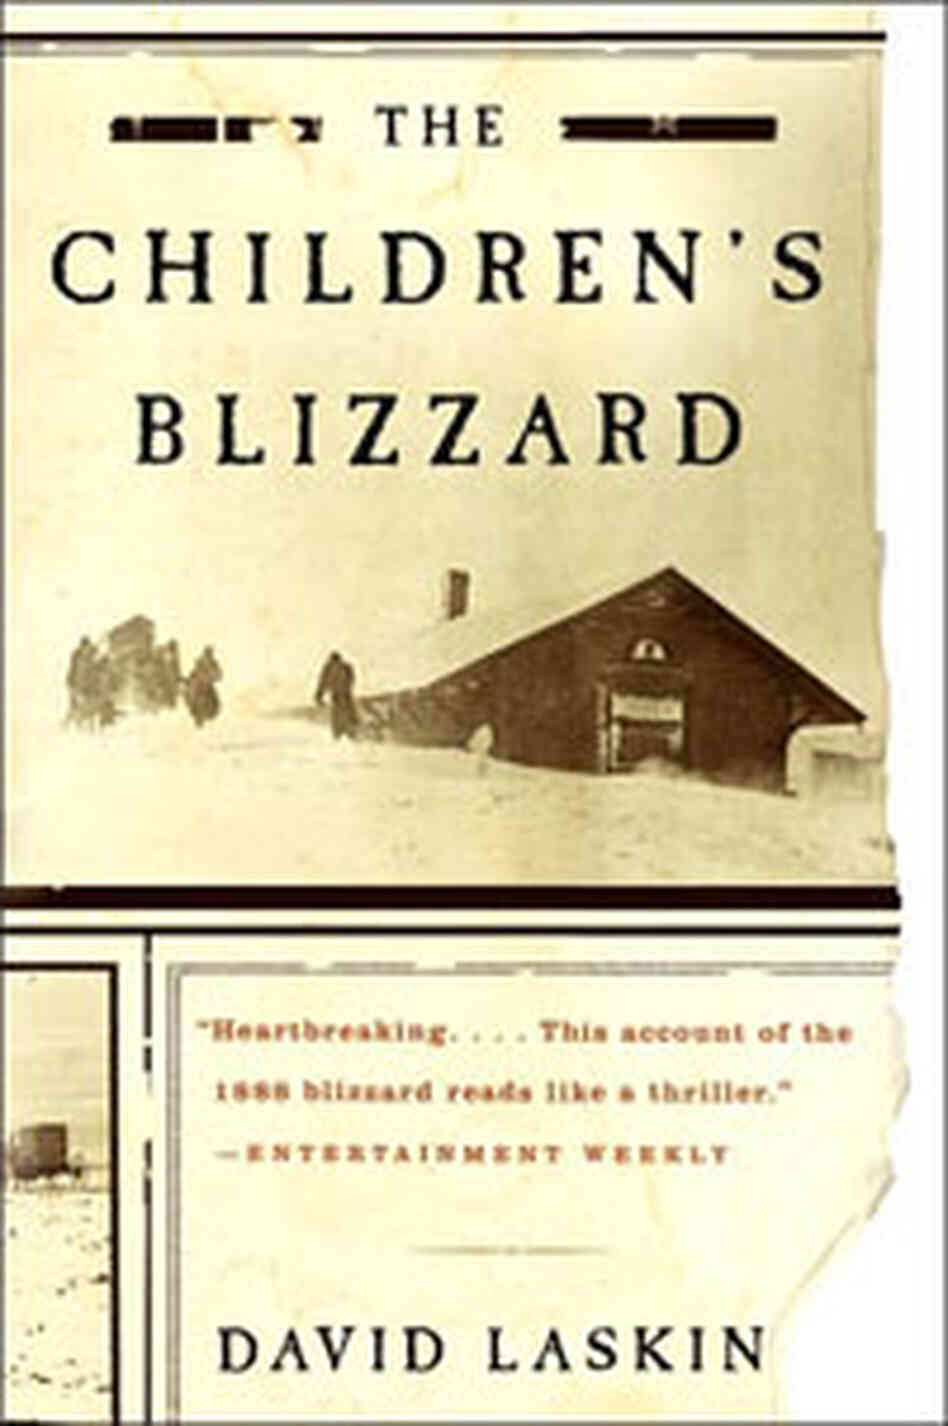 'The Children's Blizzard'